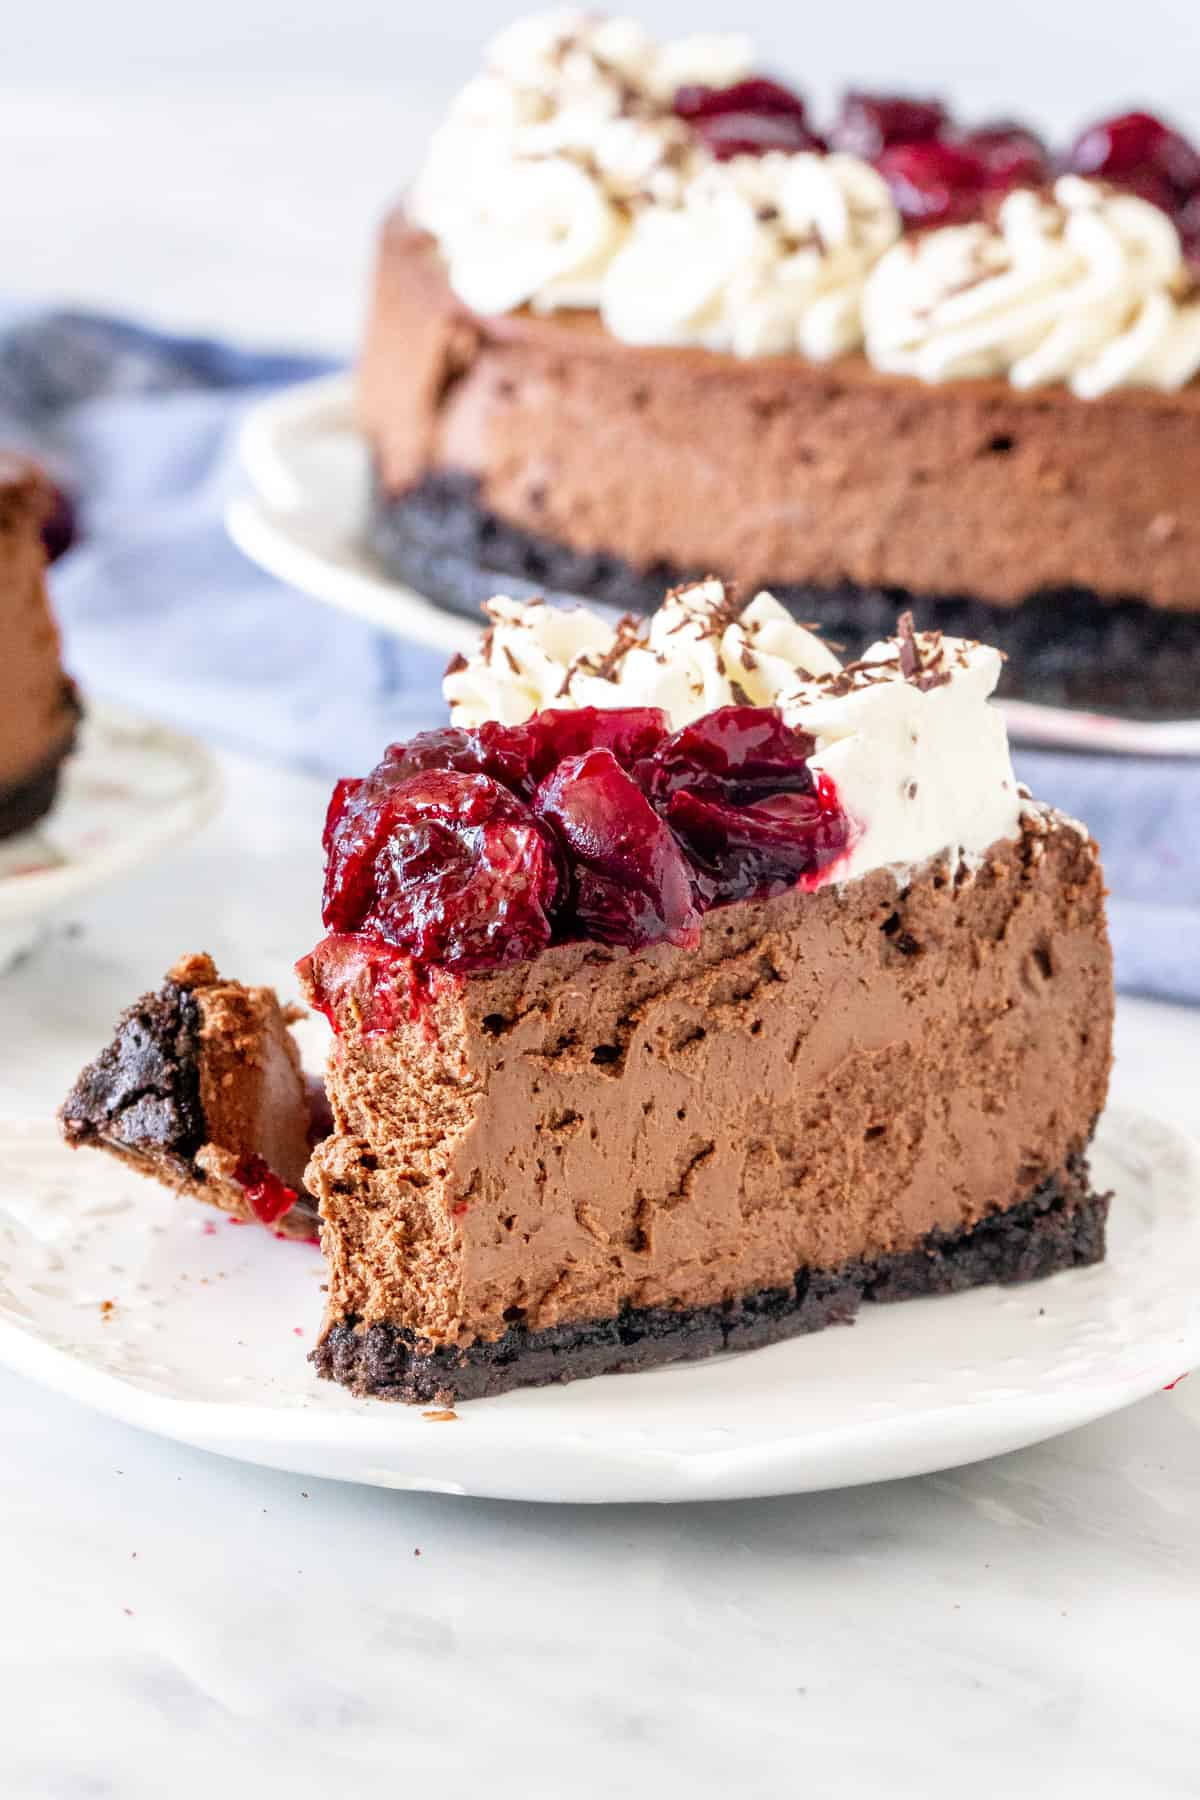 Piece of chocolate cheesecake with cherry sauce on top